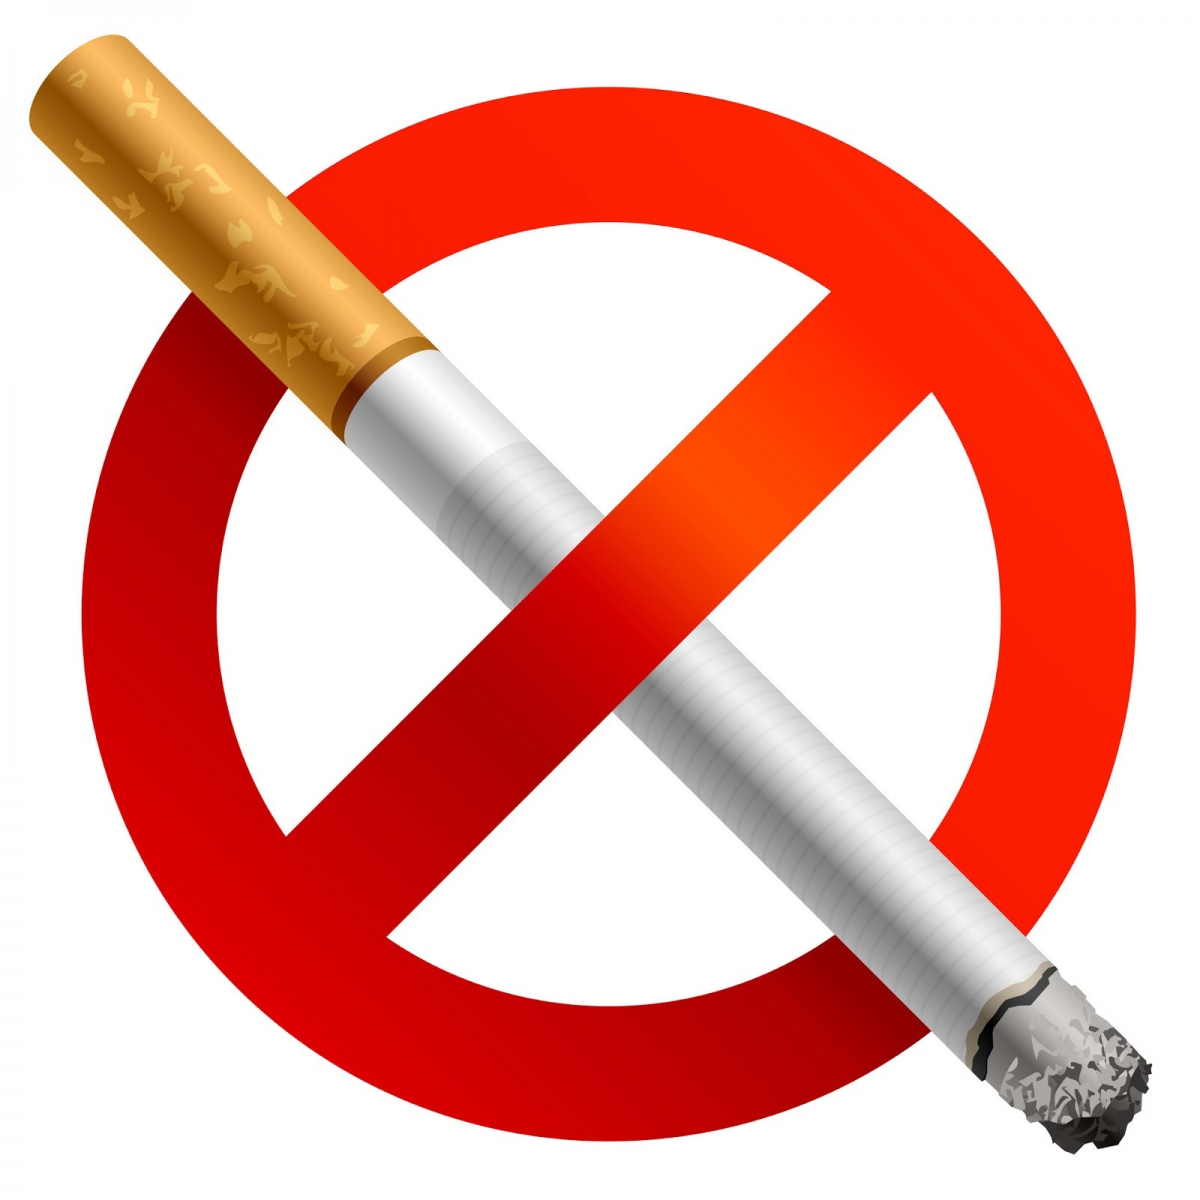 Smoking increases surgical risks and should be stopped well in advance of your plastic surgery procedure. To learn more, call Scottsdale plastic surgeon Dr. John Corey at 480-767-7700